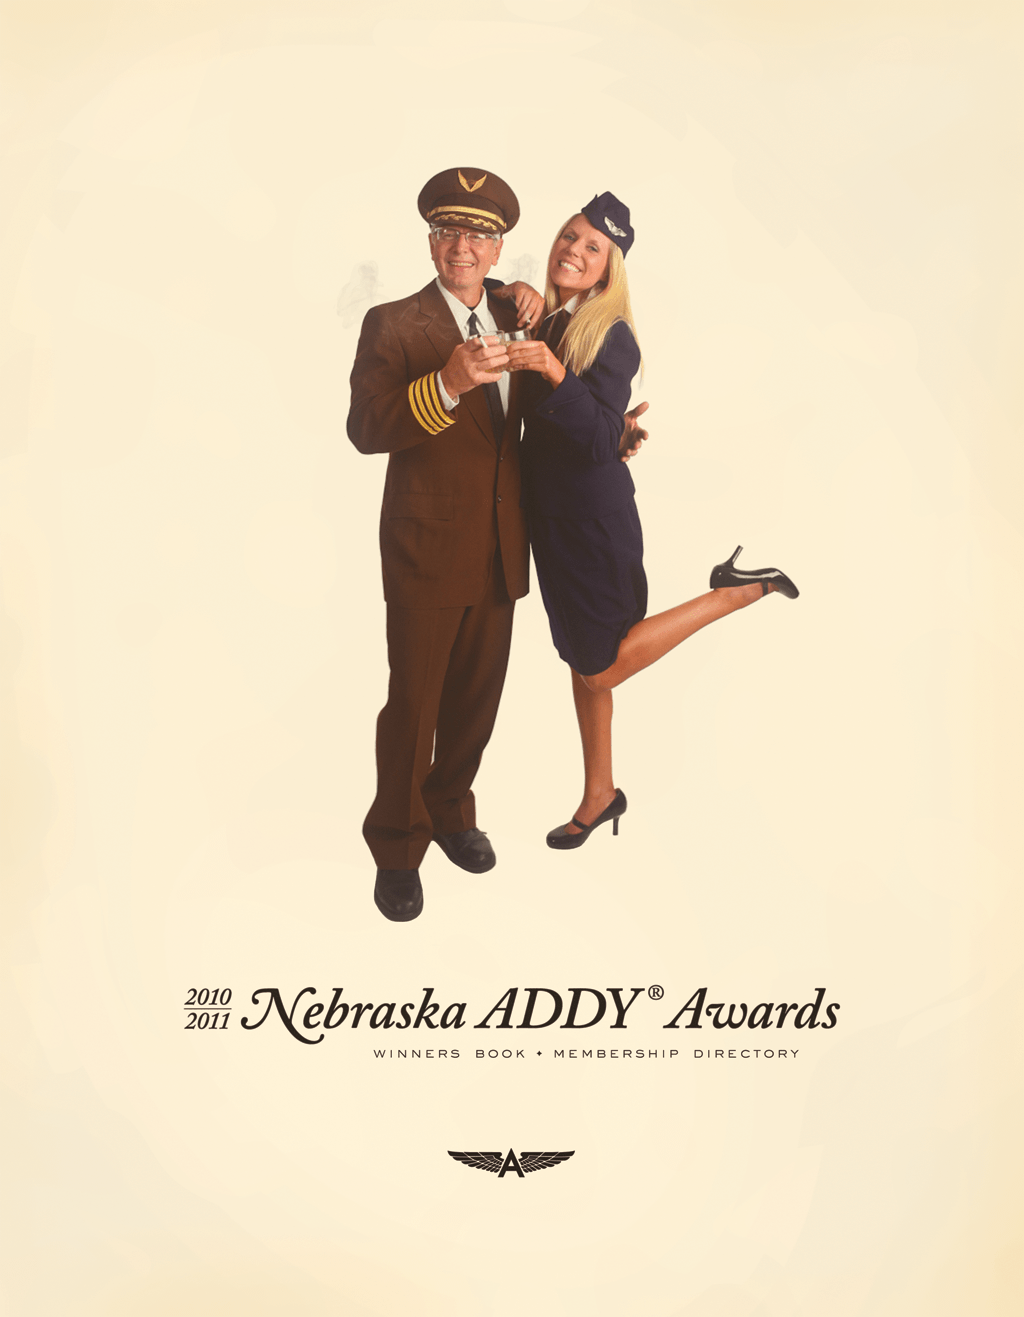 ADDYs Winners Book